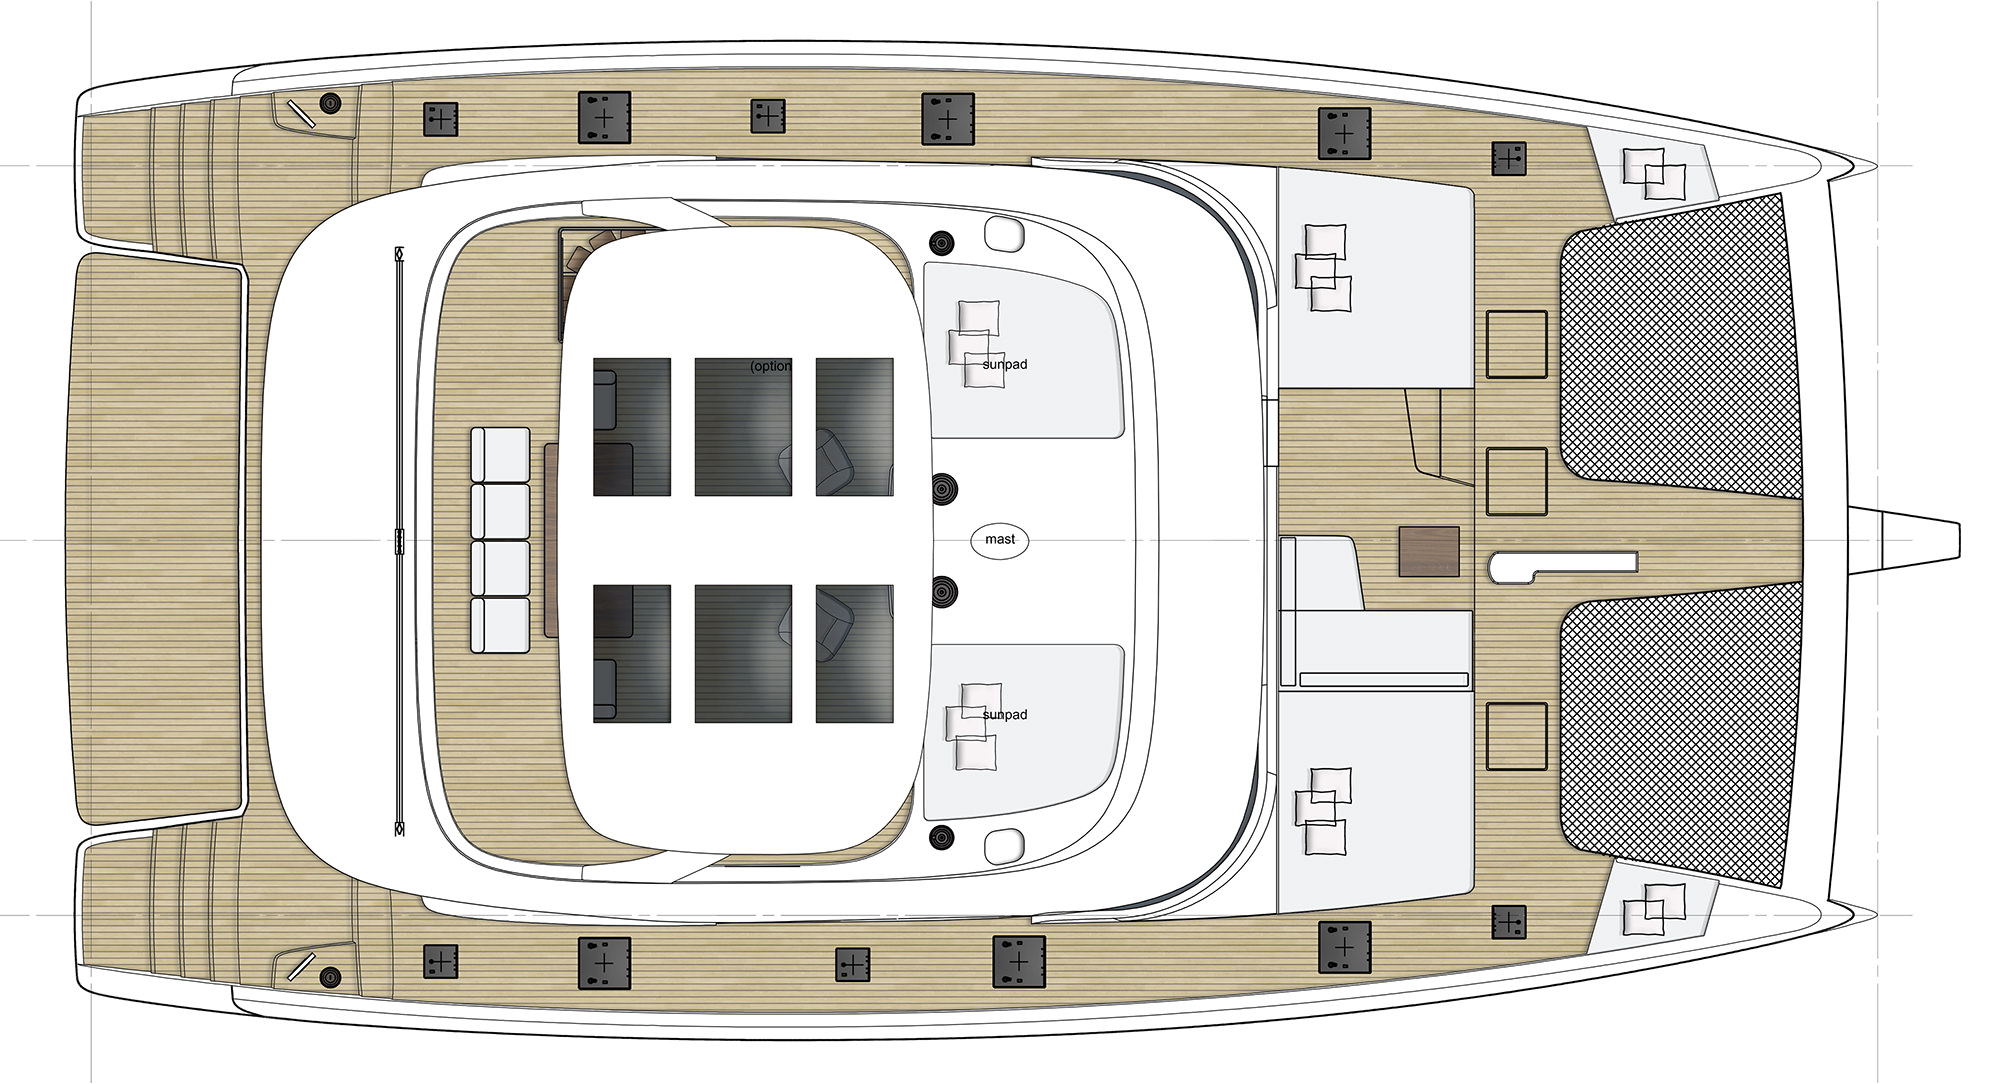 New Sail Catamaran for Sale  Sunreef 60 Layout & Accommodations